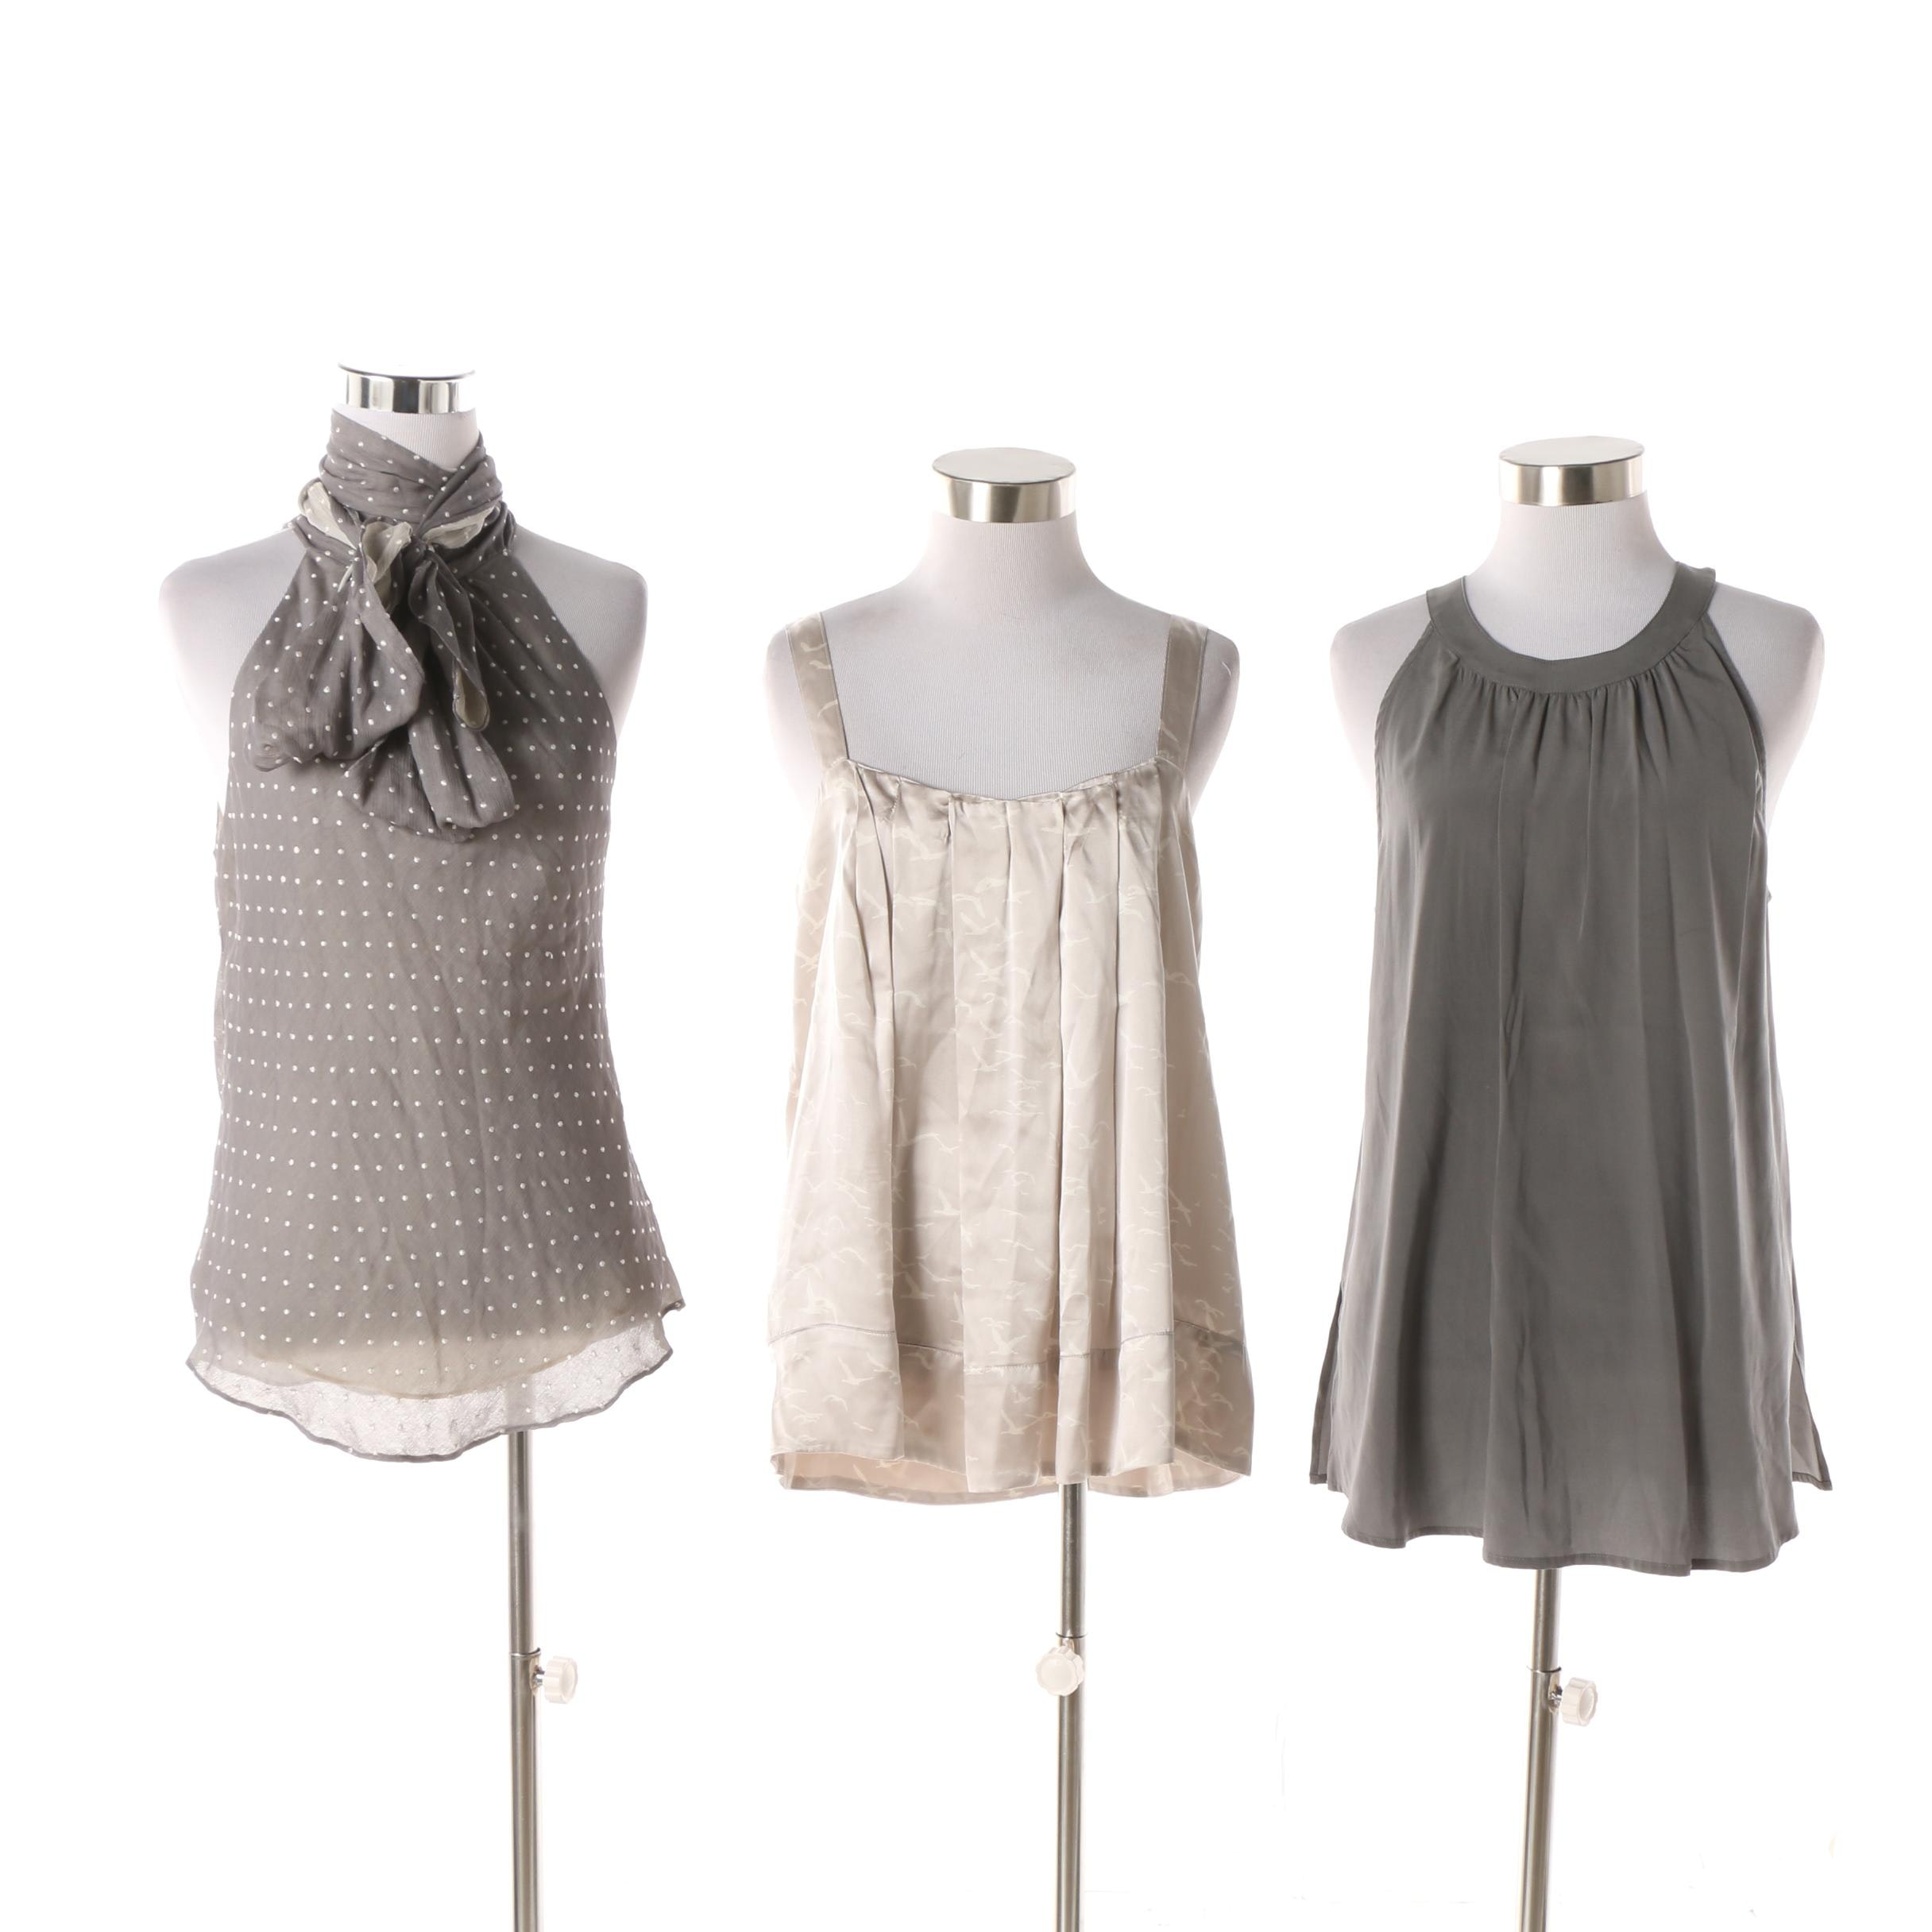 Sleeveless Silk Tops including Diane von Furstenberg and Ulla Johnson